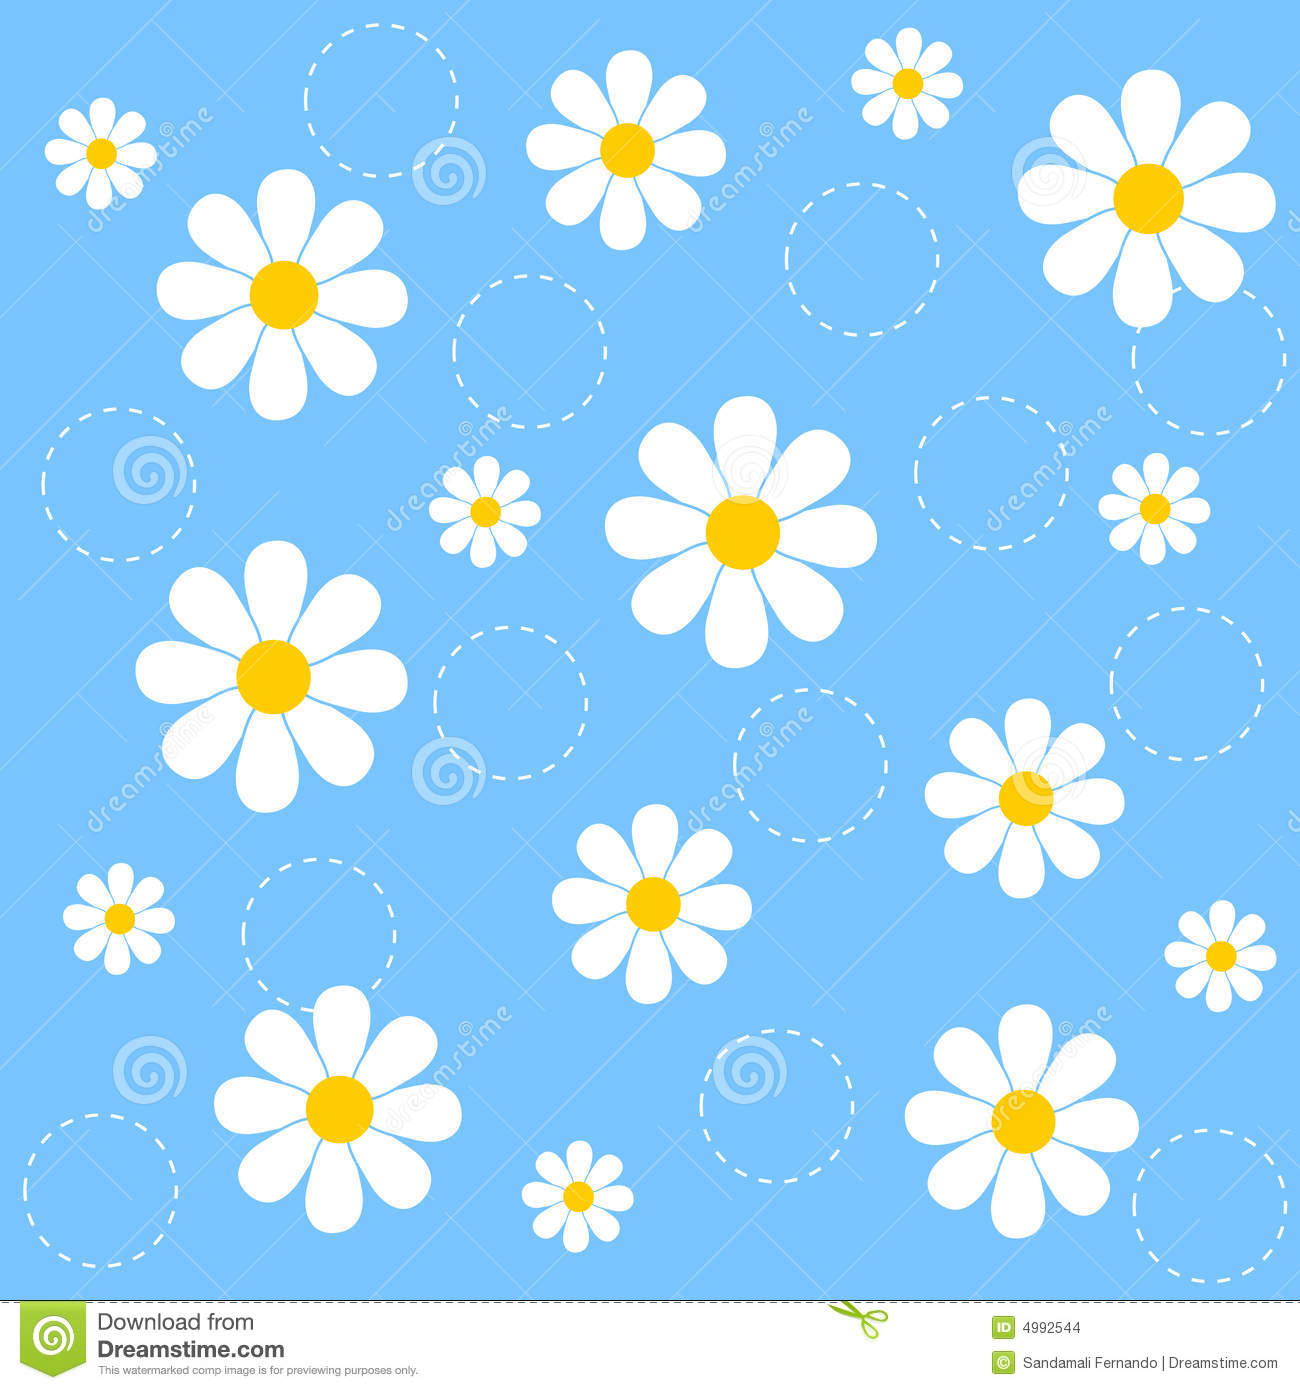 Daisy Iphone Wallpaper Cute Blue Wallpapers 37 Wallpapers Adorable Wallpapers